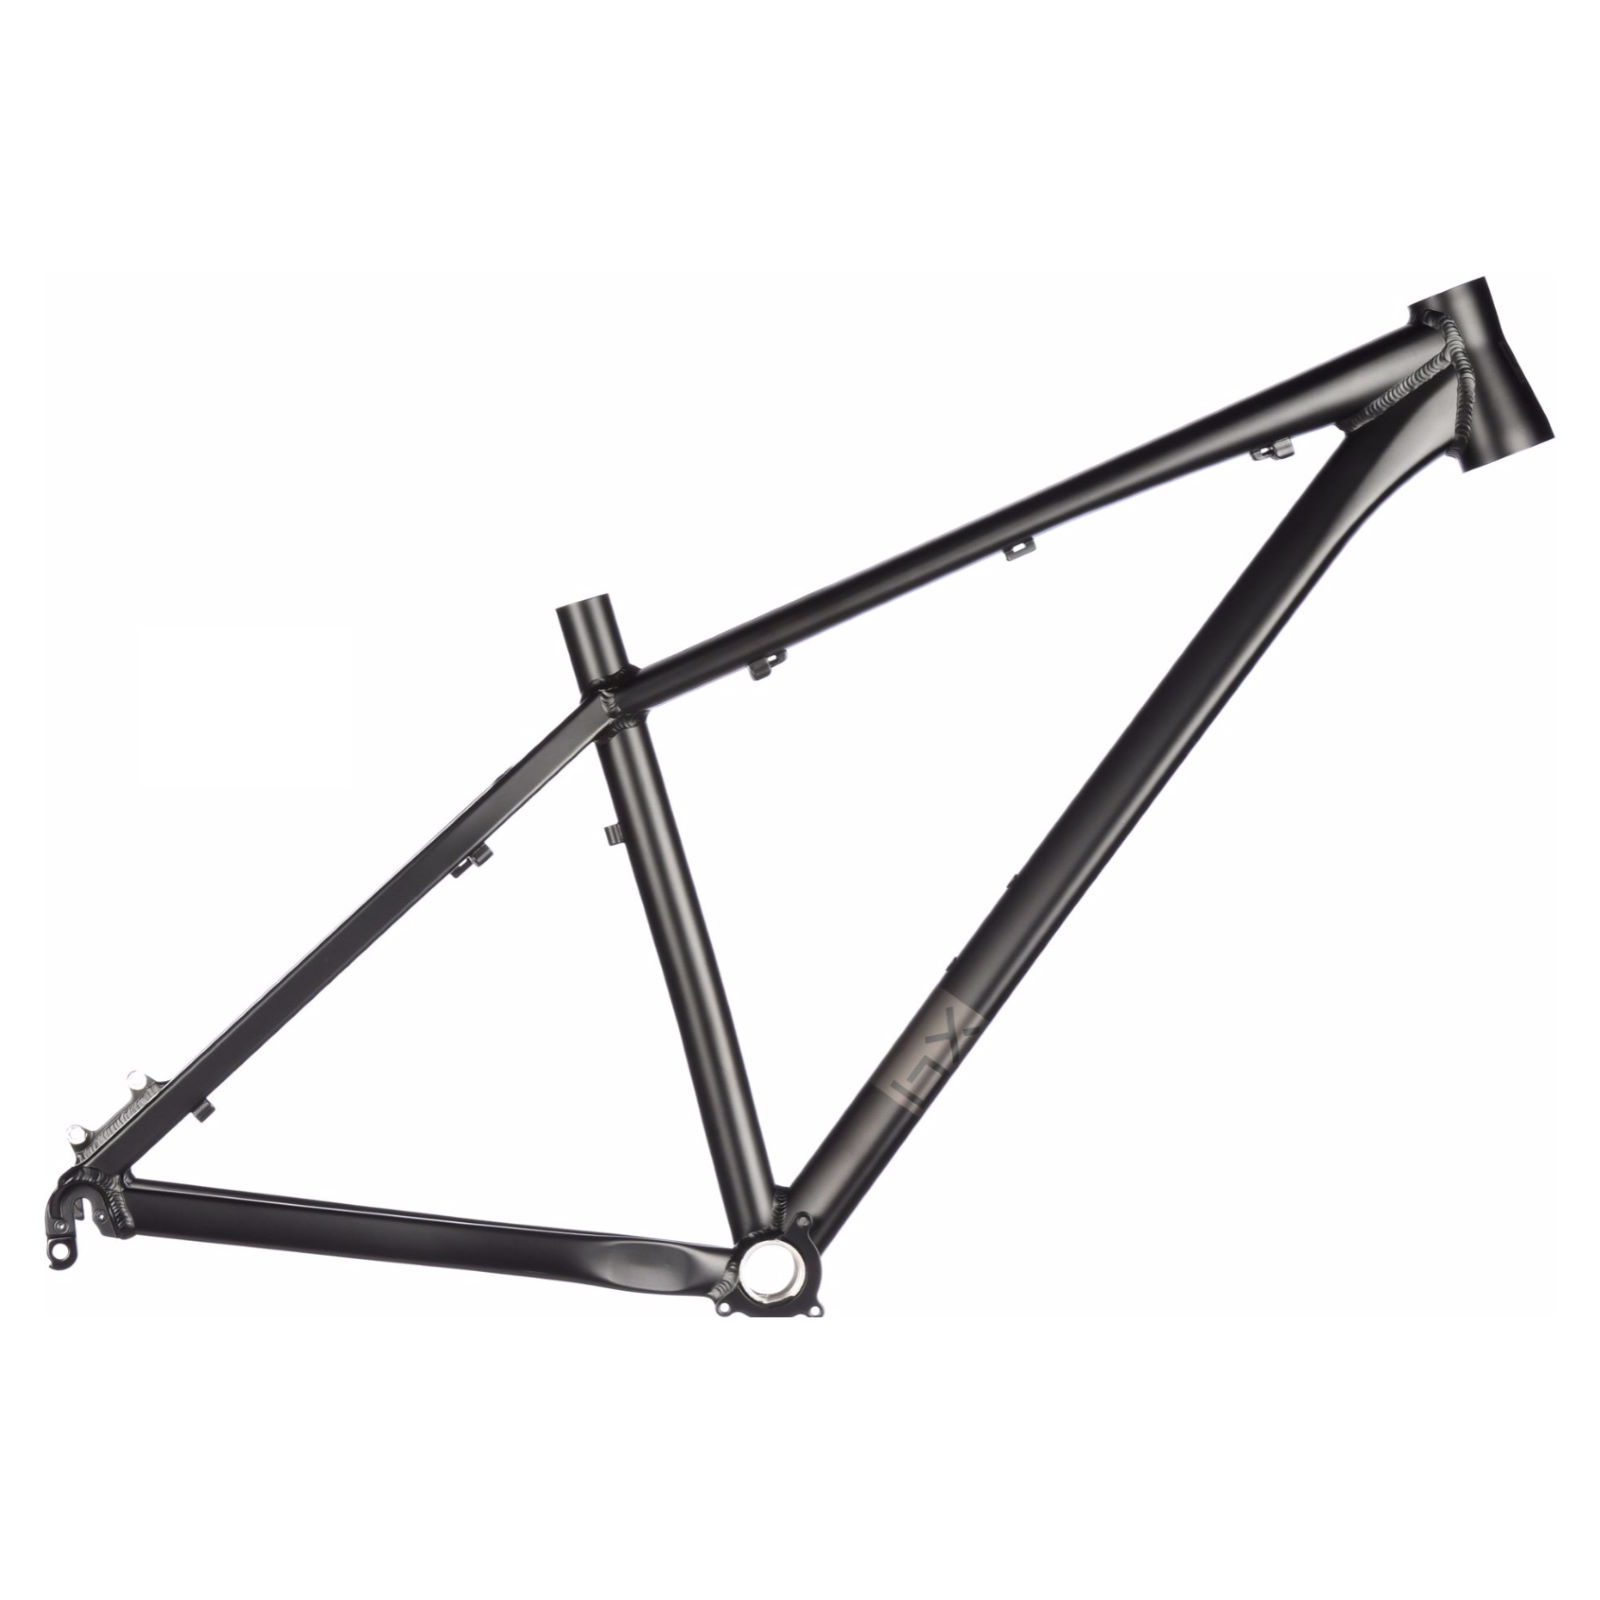 brand x ht 01 275 hardtail mountain bike frame - Mountain Bike Frames